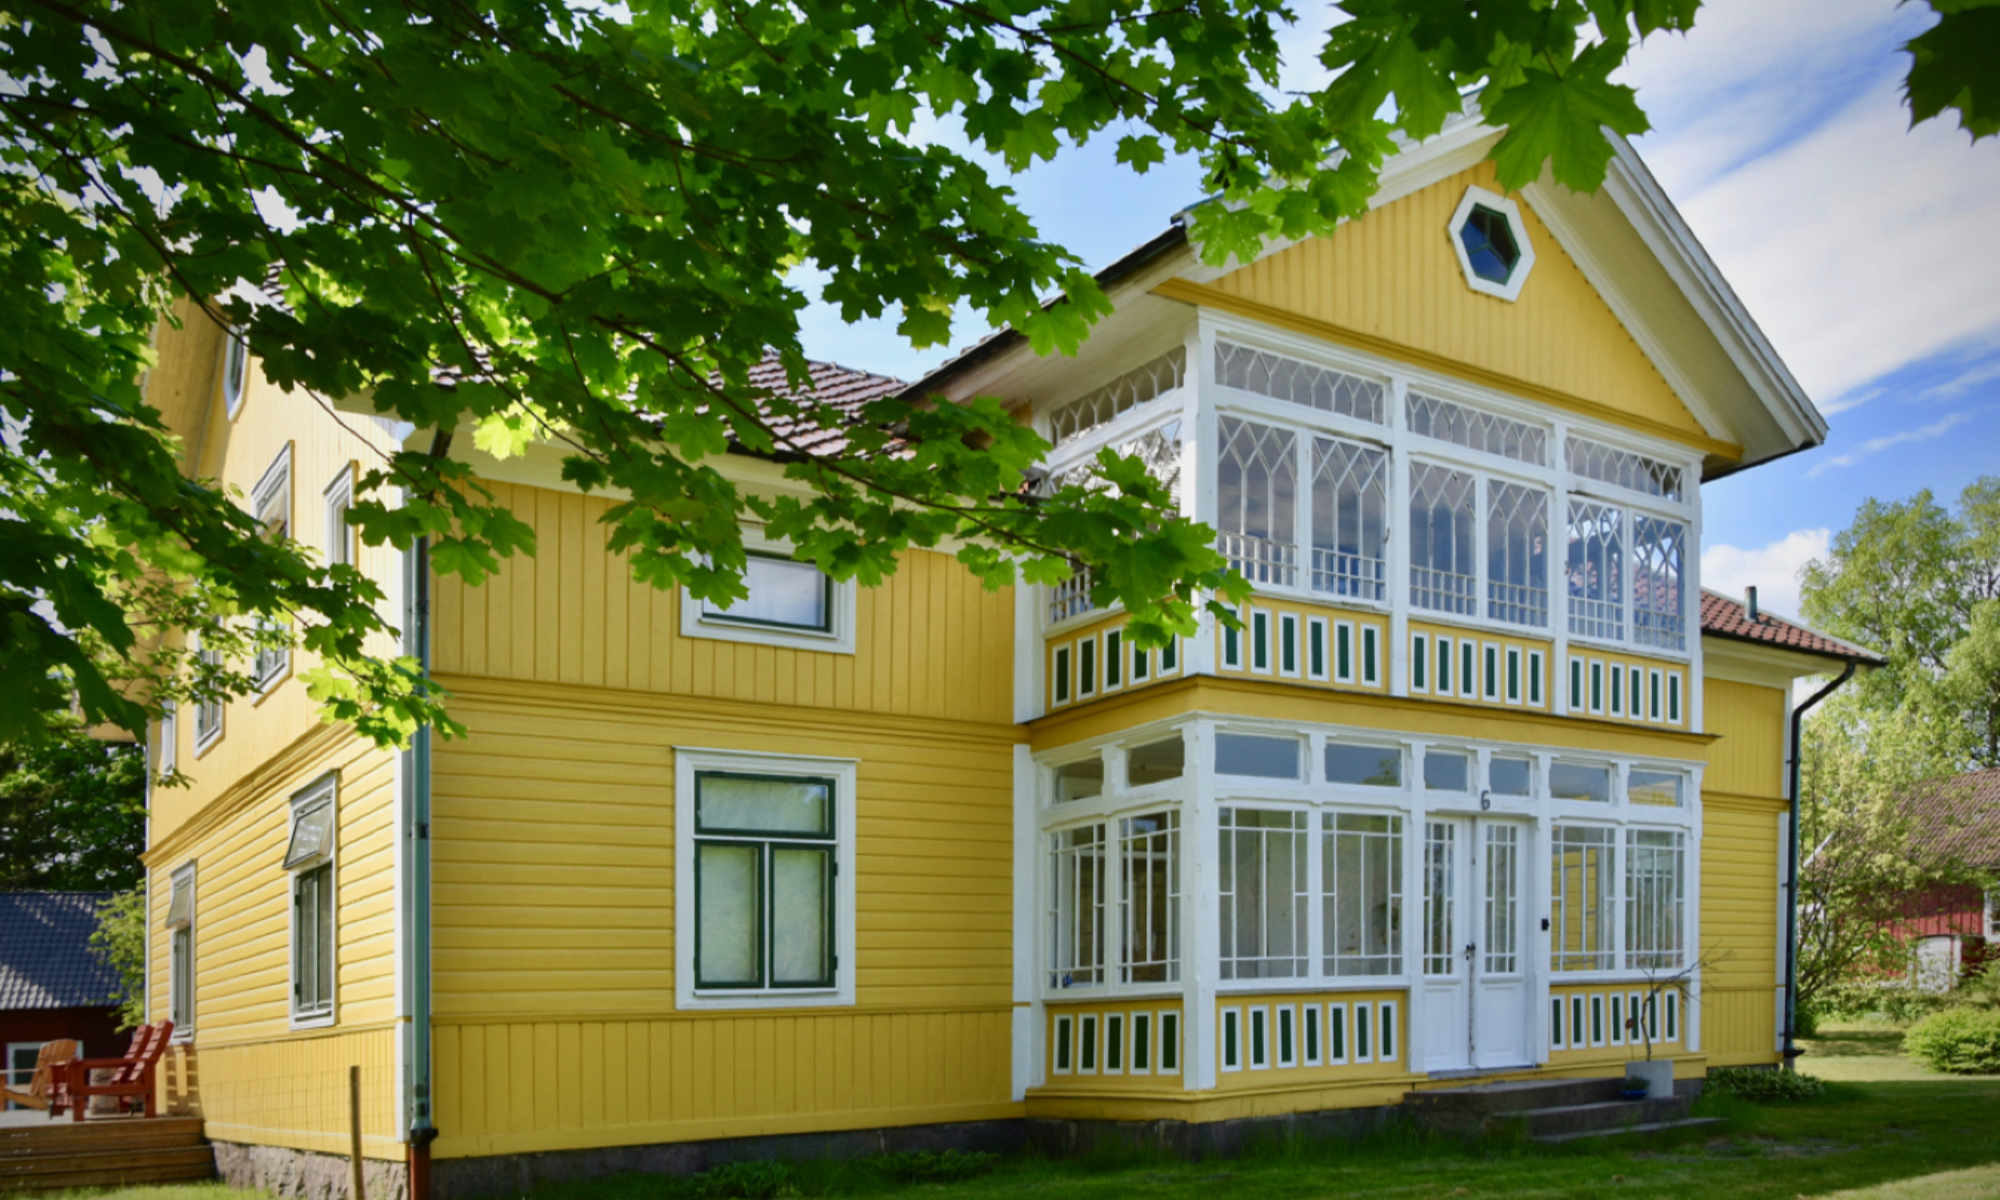 A B&B in the south of Sweden